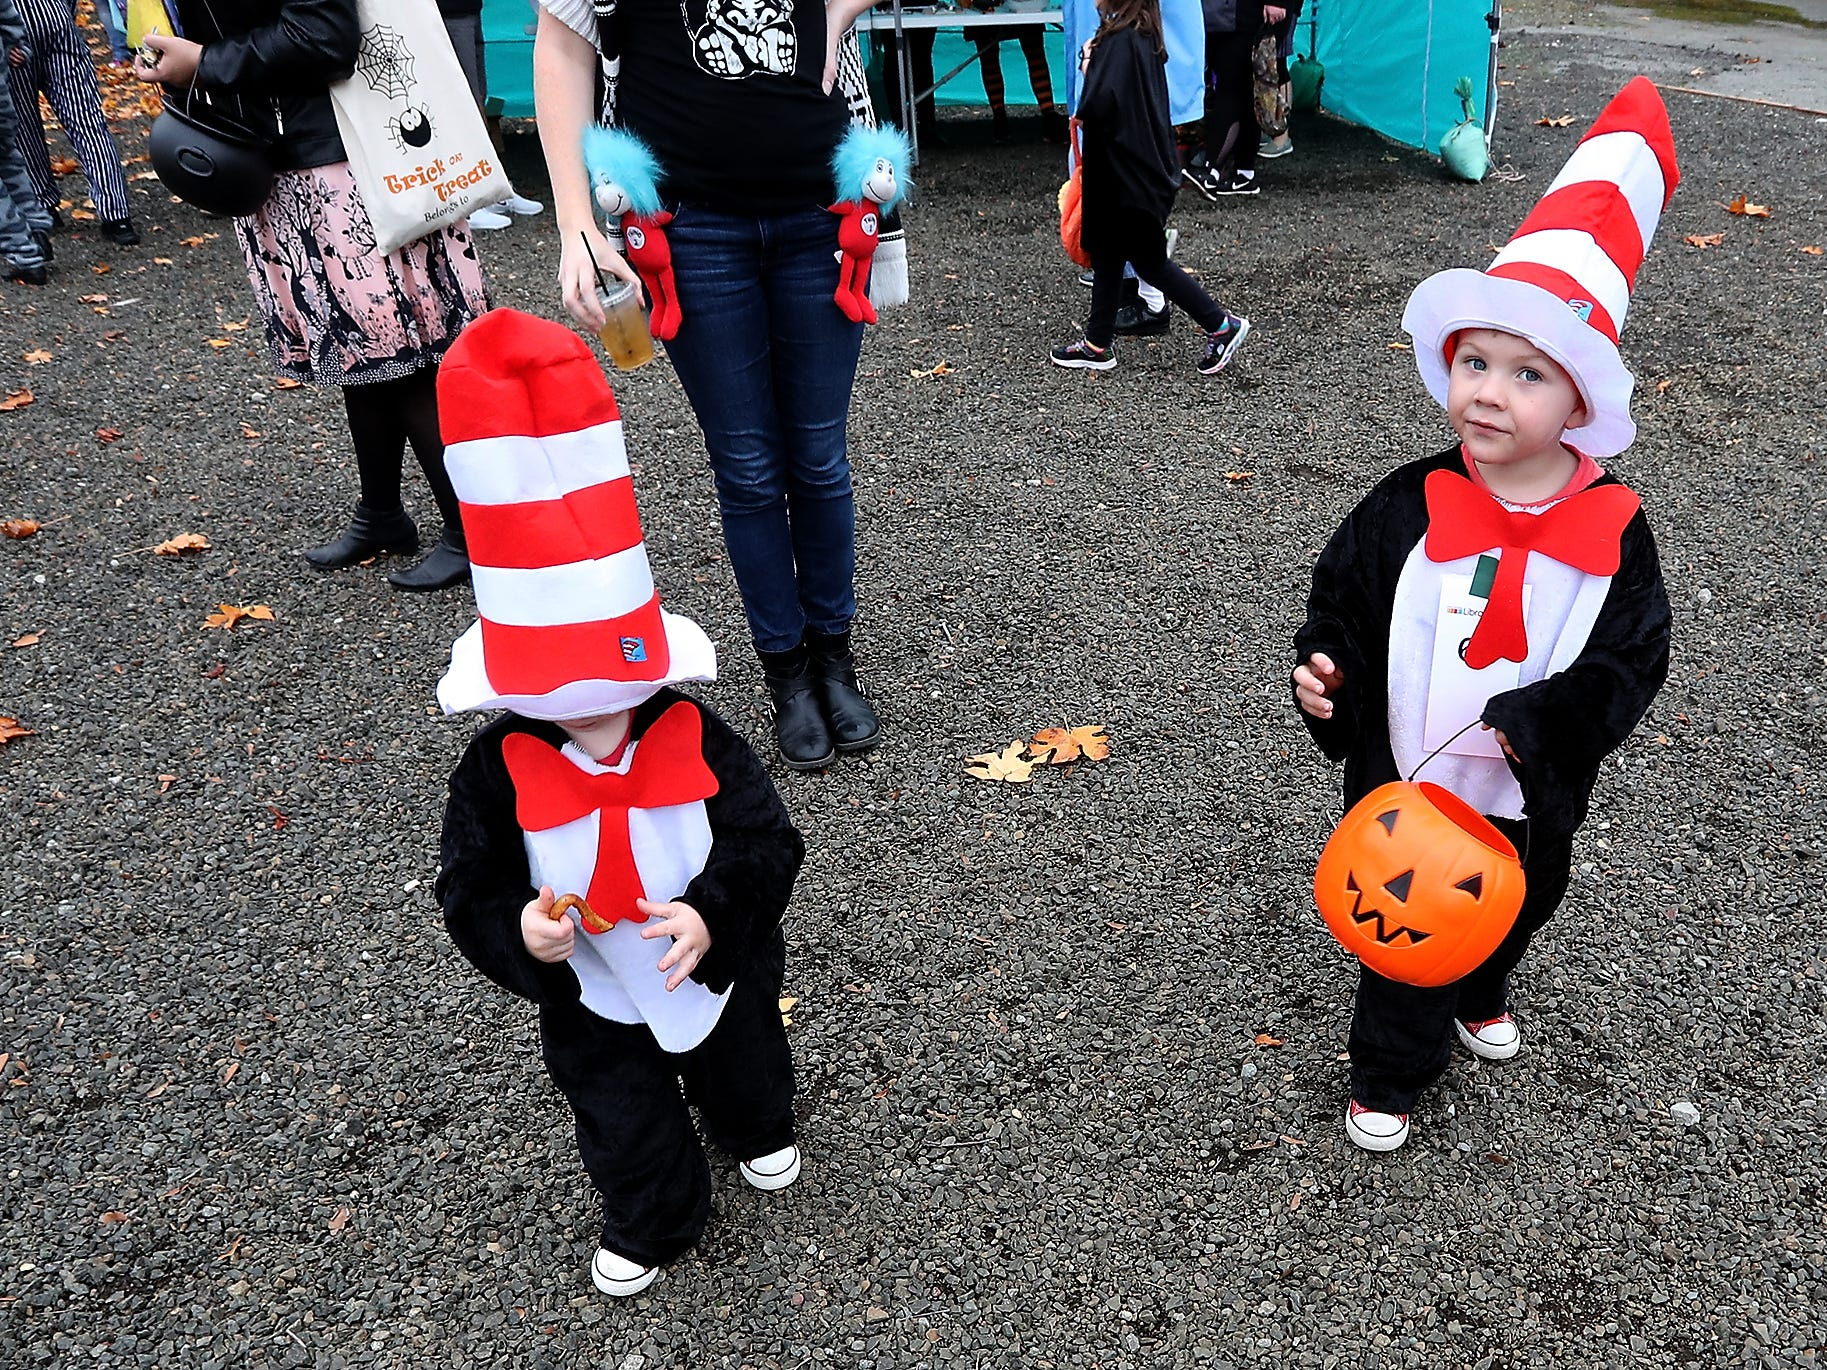 Brothers Weyland and Wyatt Cook donned Cat in the Hat costumes for the Halloween Spookfest in downtown Port Orchard on Saturday, October 27, 2018.